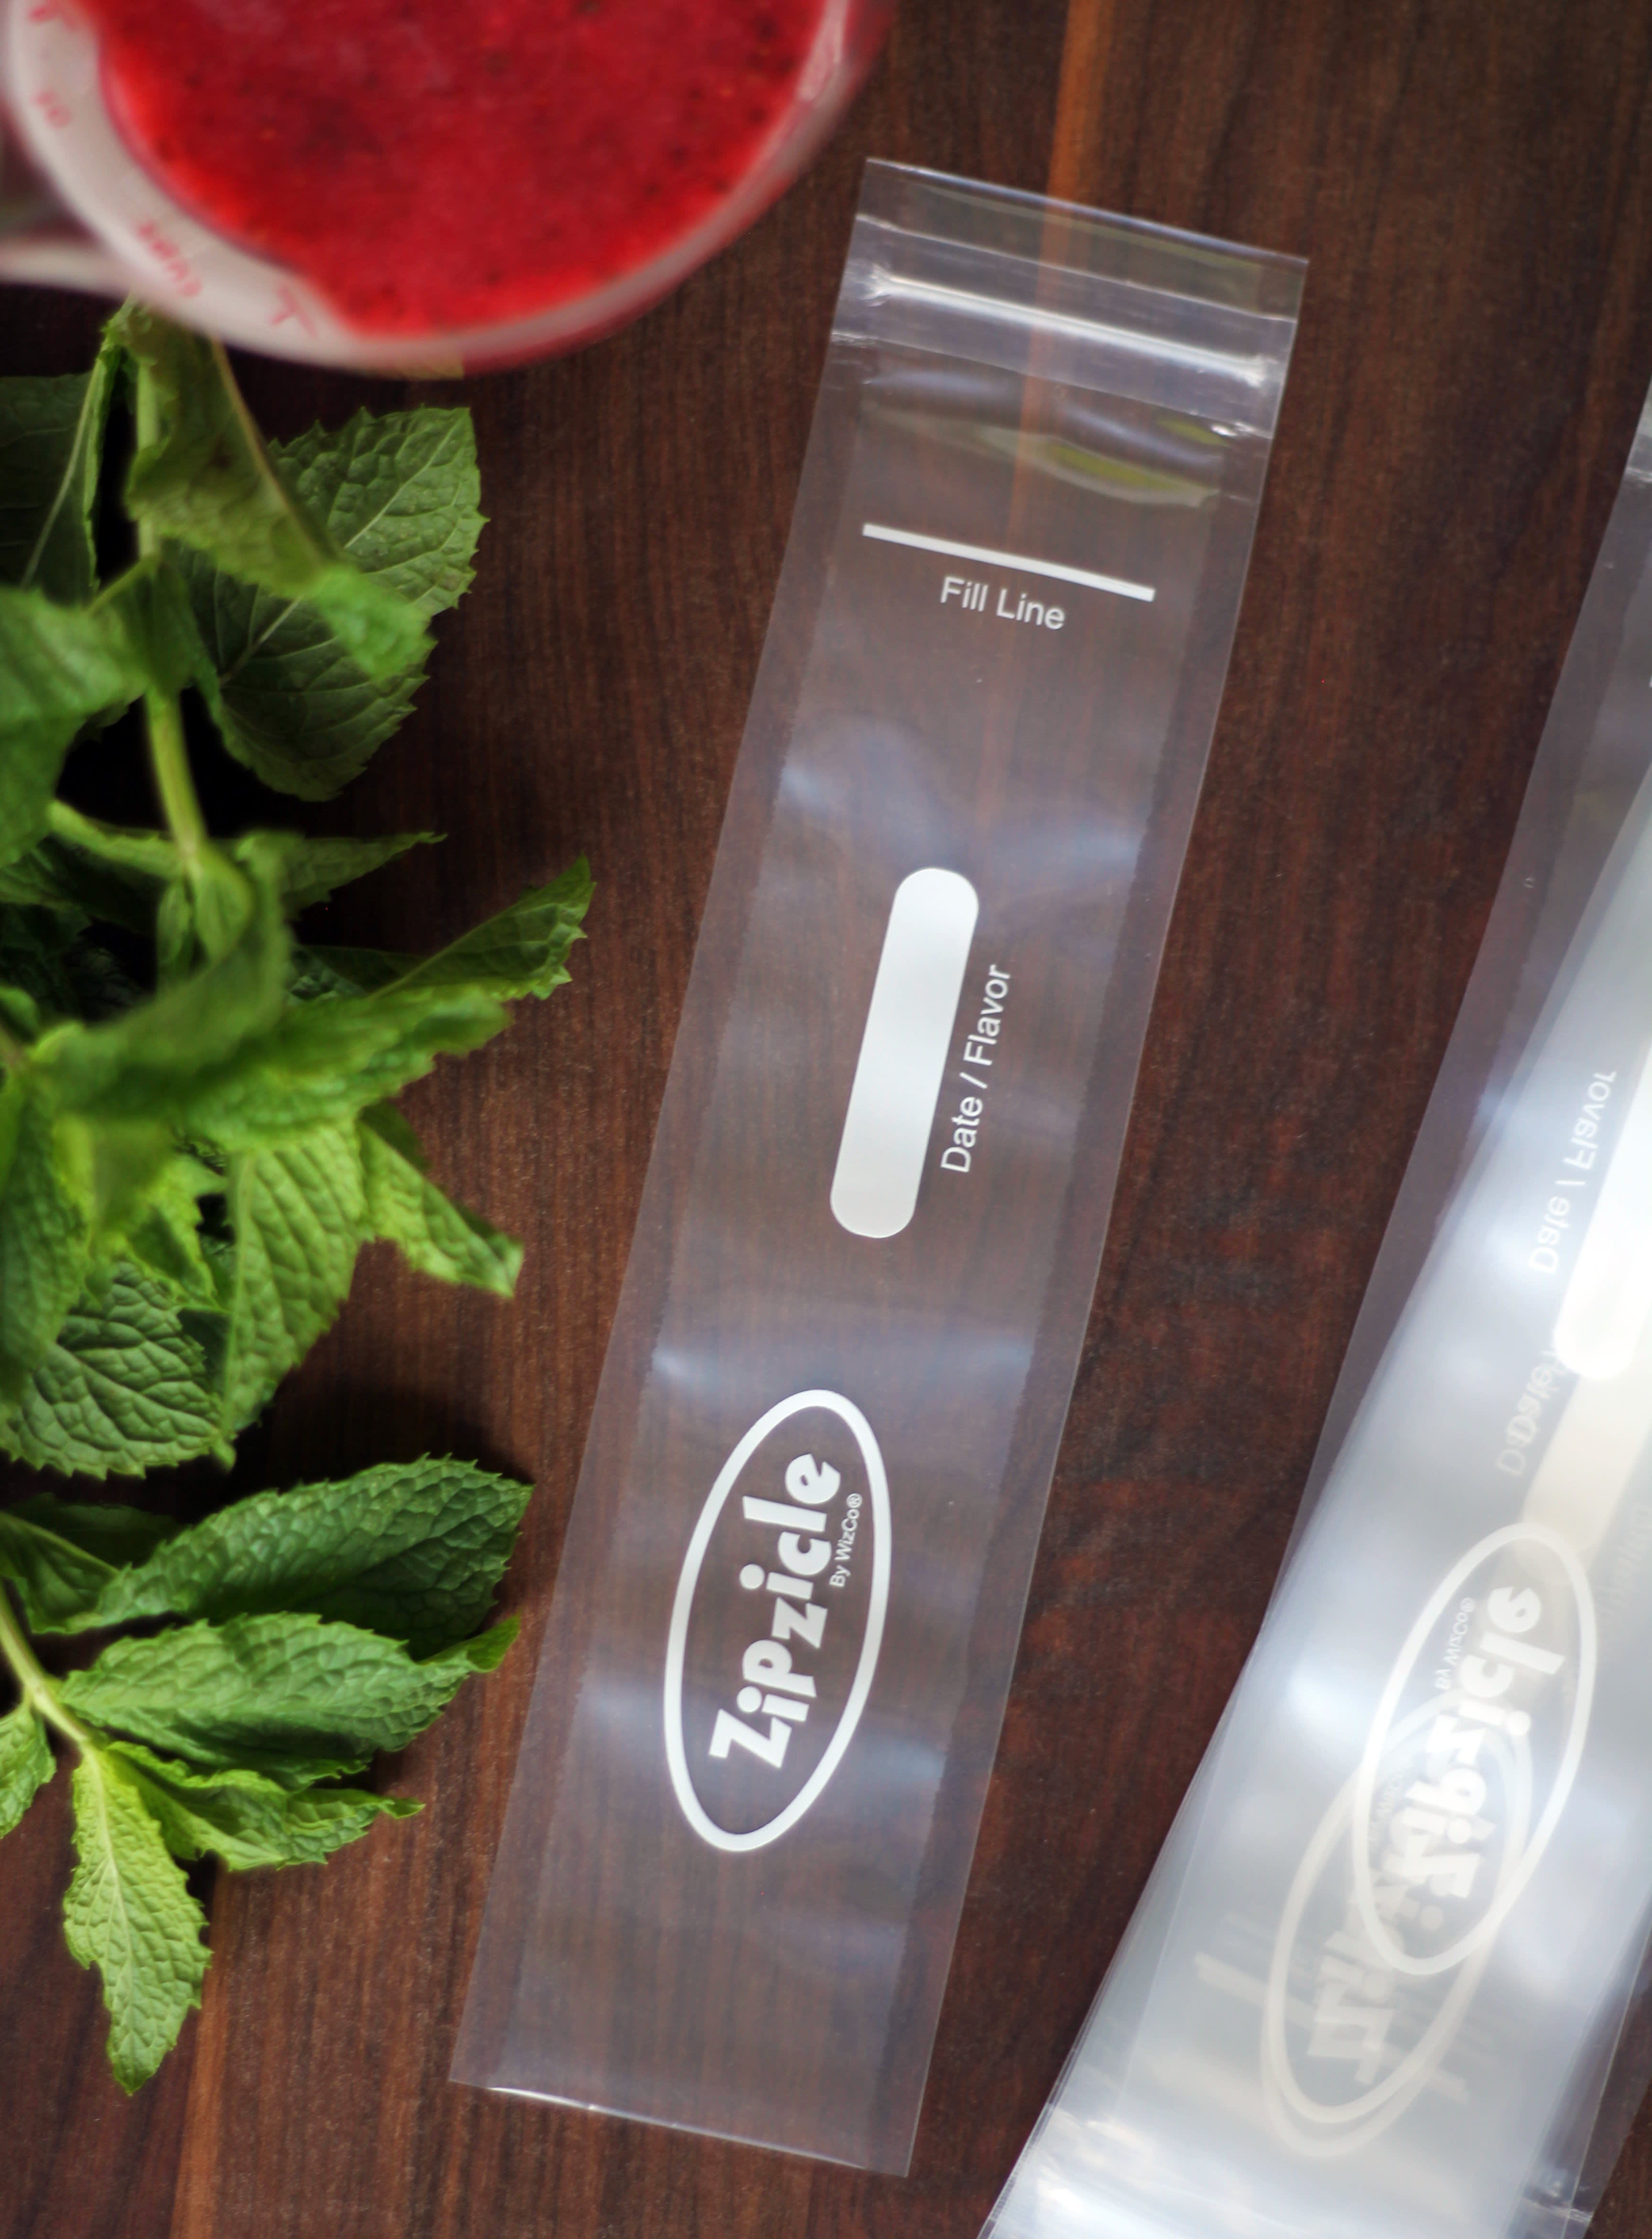 Zipzicles Help You Make Popsicles in a Pinch (Even In a Tiny Kitchen): gallery image 2